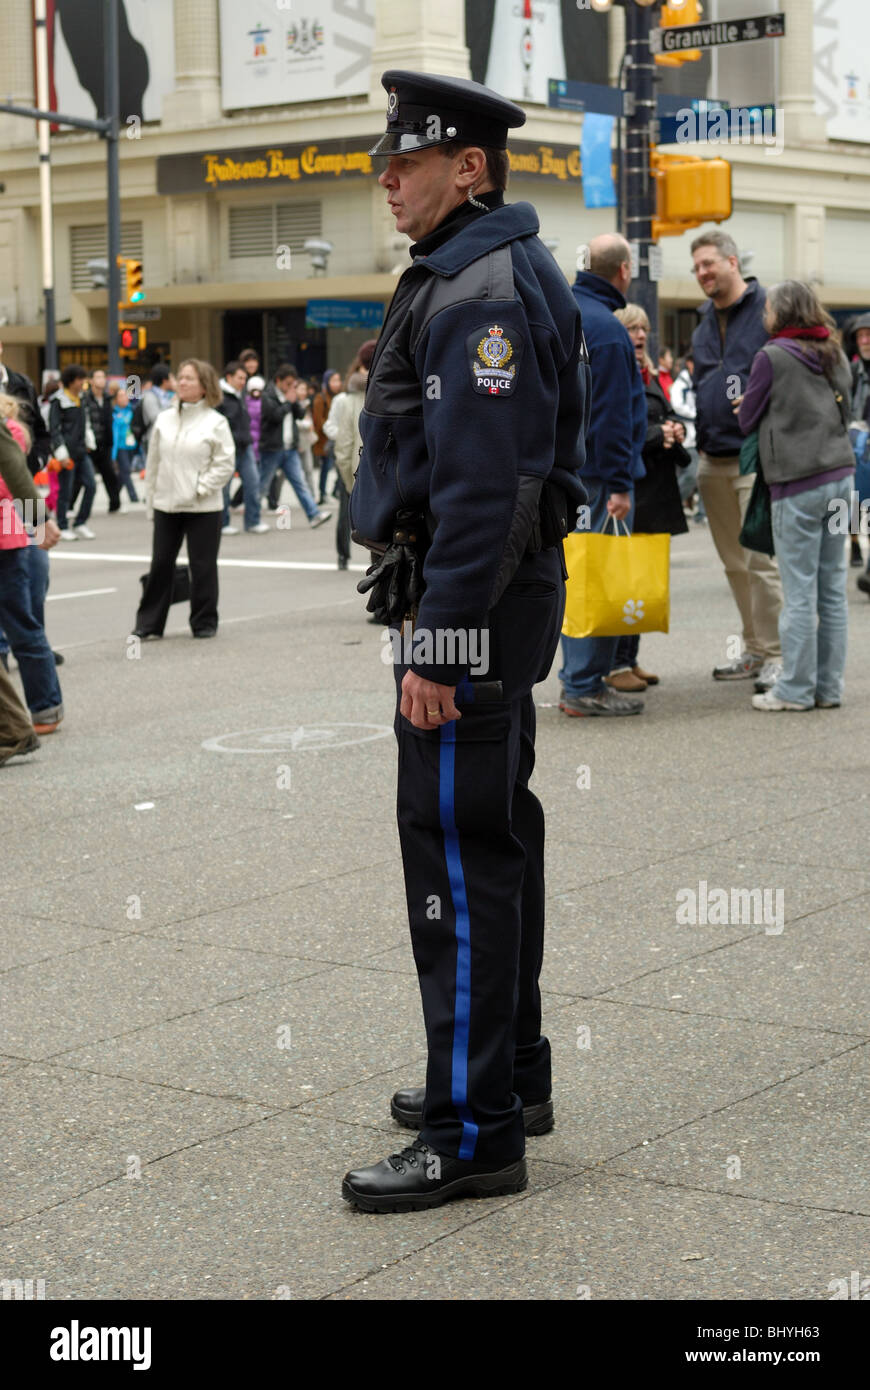 Vancouver Policeman standing on the sidewalk ensuring everyone and thing is safe. - Stock Image